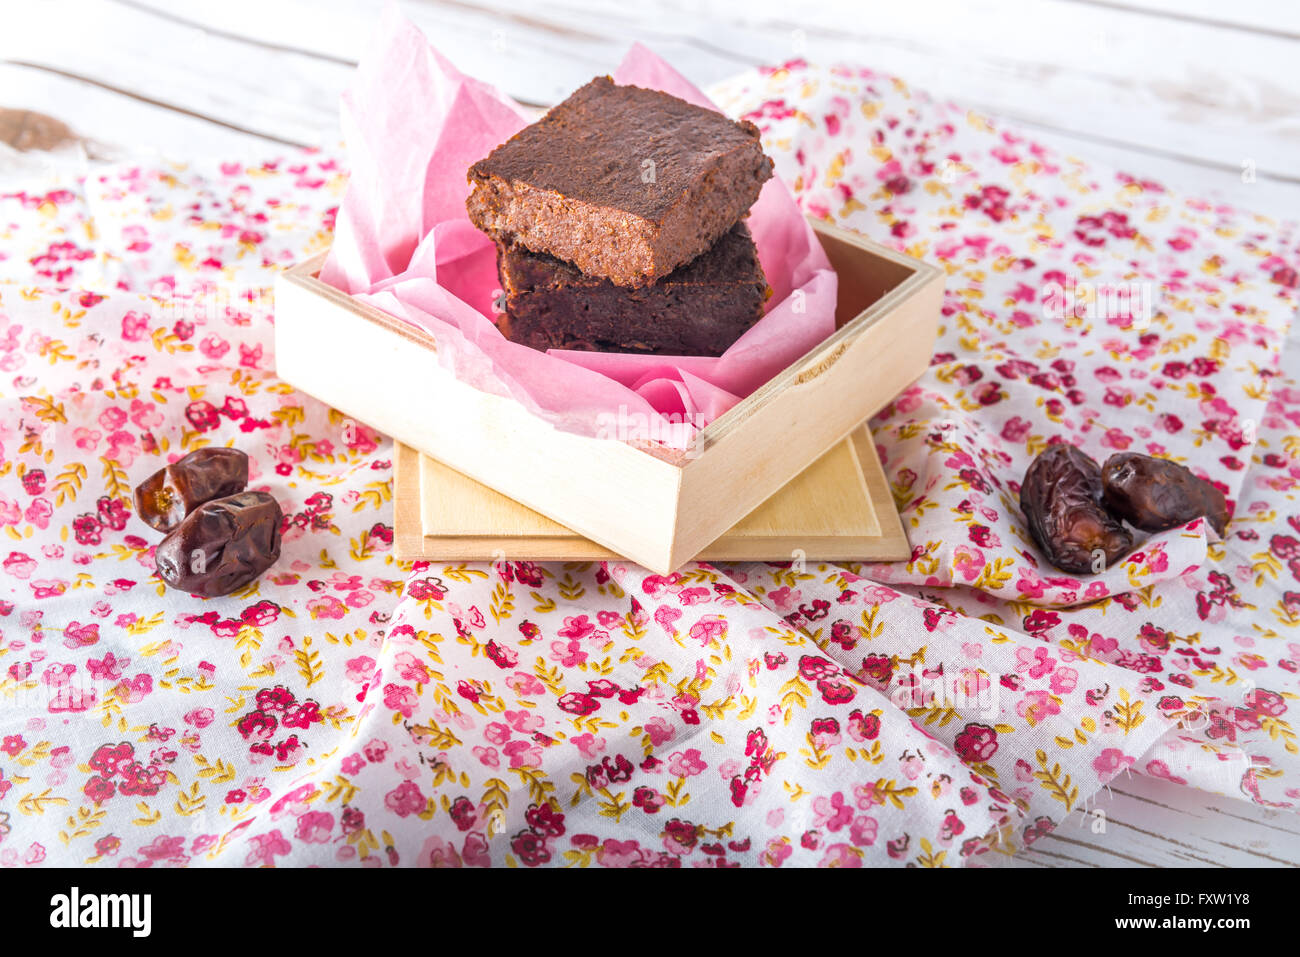 Healthy gluten free Paleo style brownies made with sweet potato, dates and almond flour in a wooden box - Stock Image